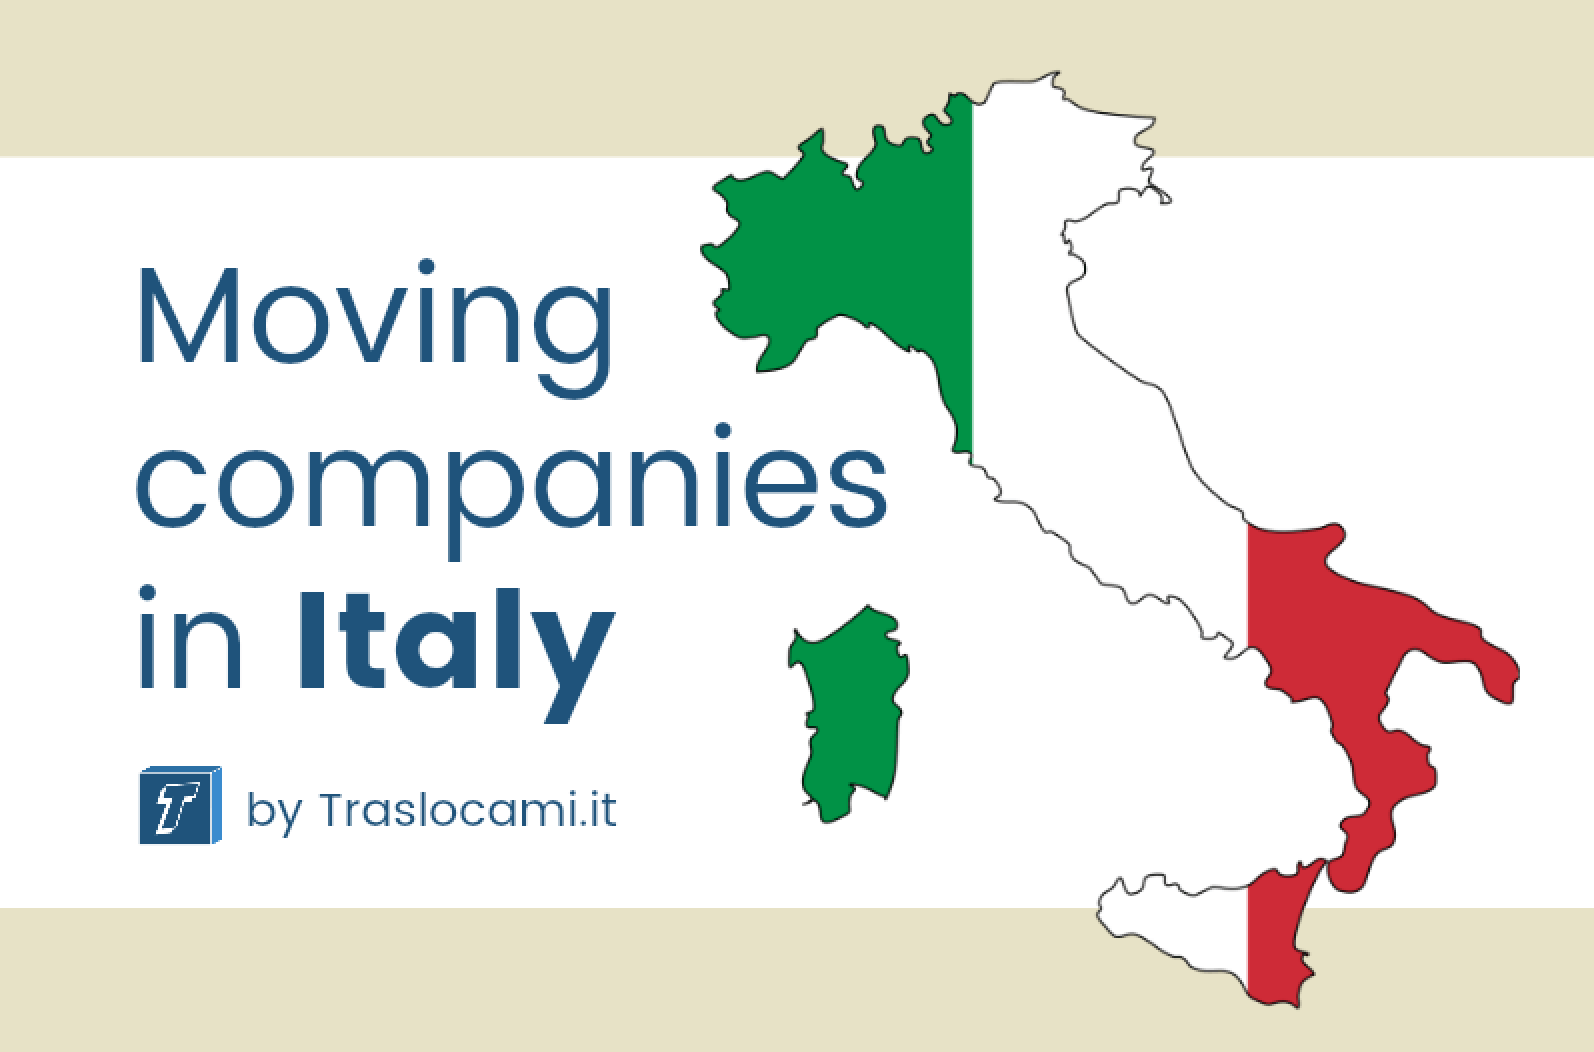 Moving companies in Italy